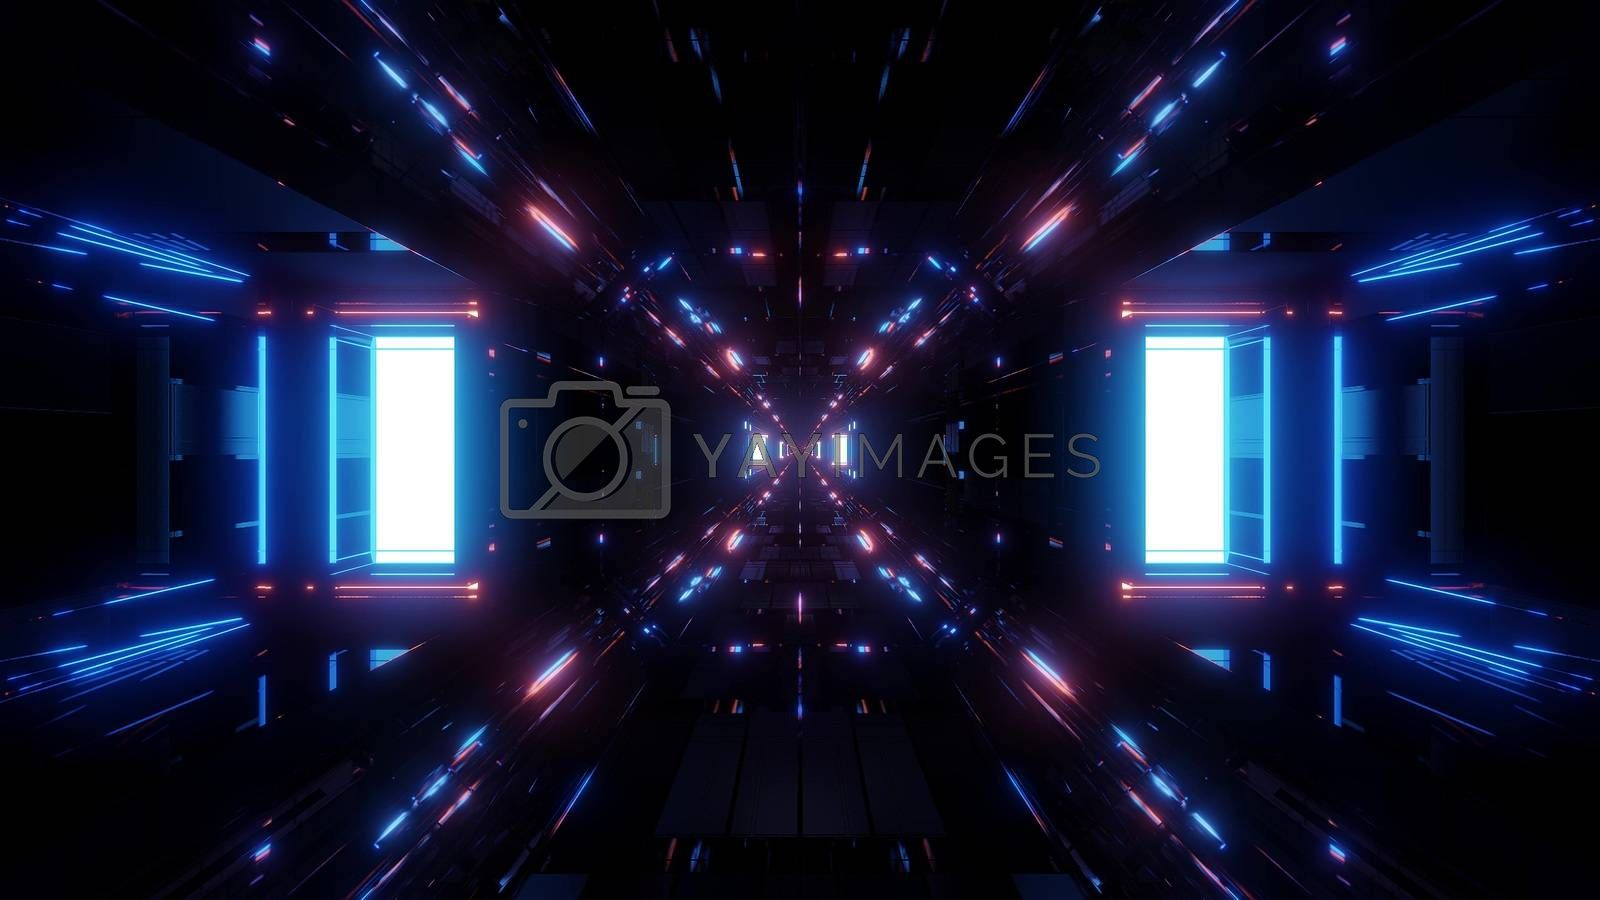 beautiful futuristic scifi space ship tunnel background 3d illustration 3d rendering by tunnelmotions